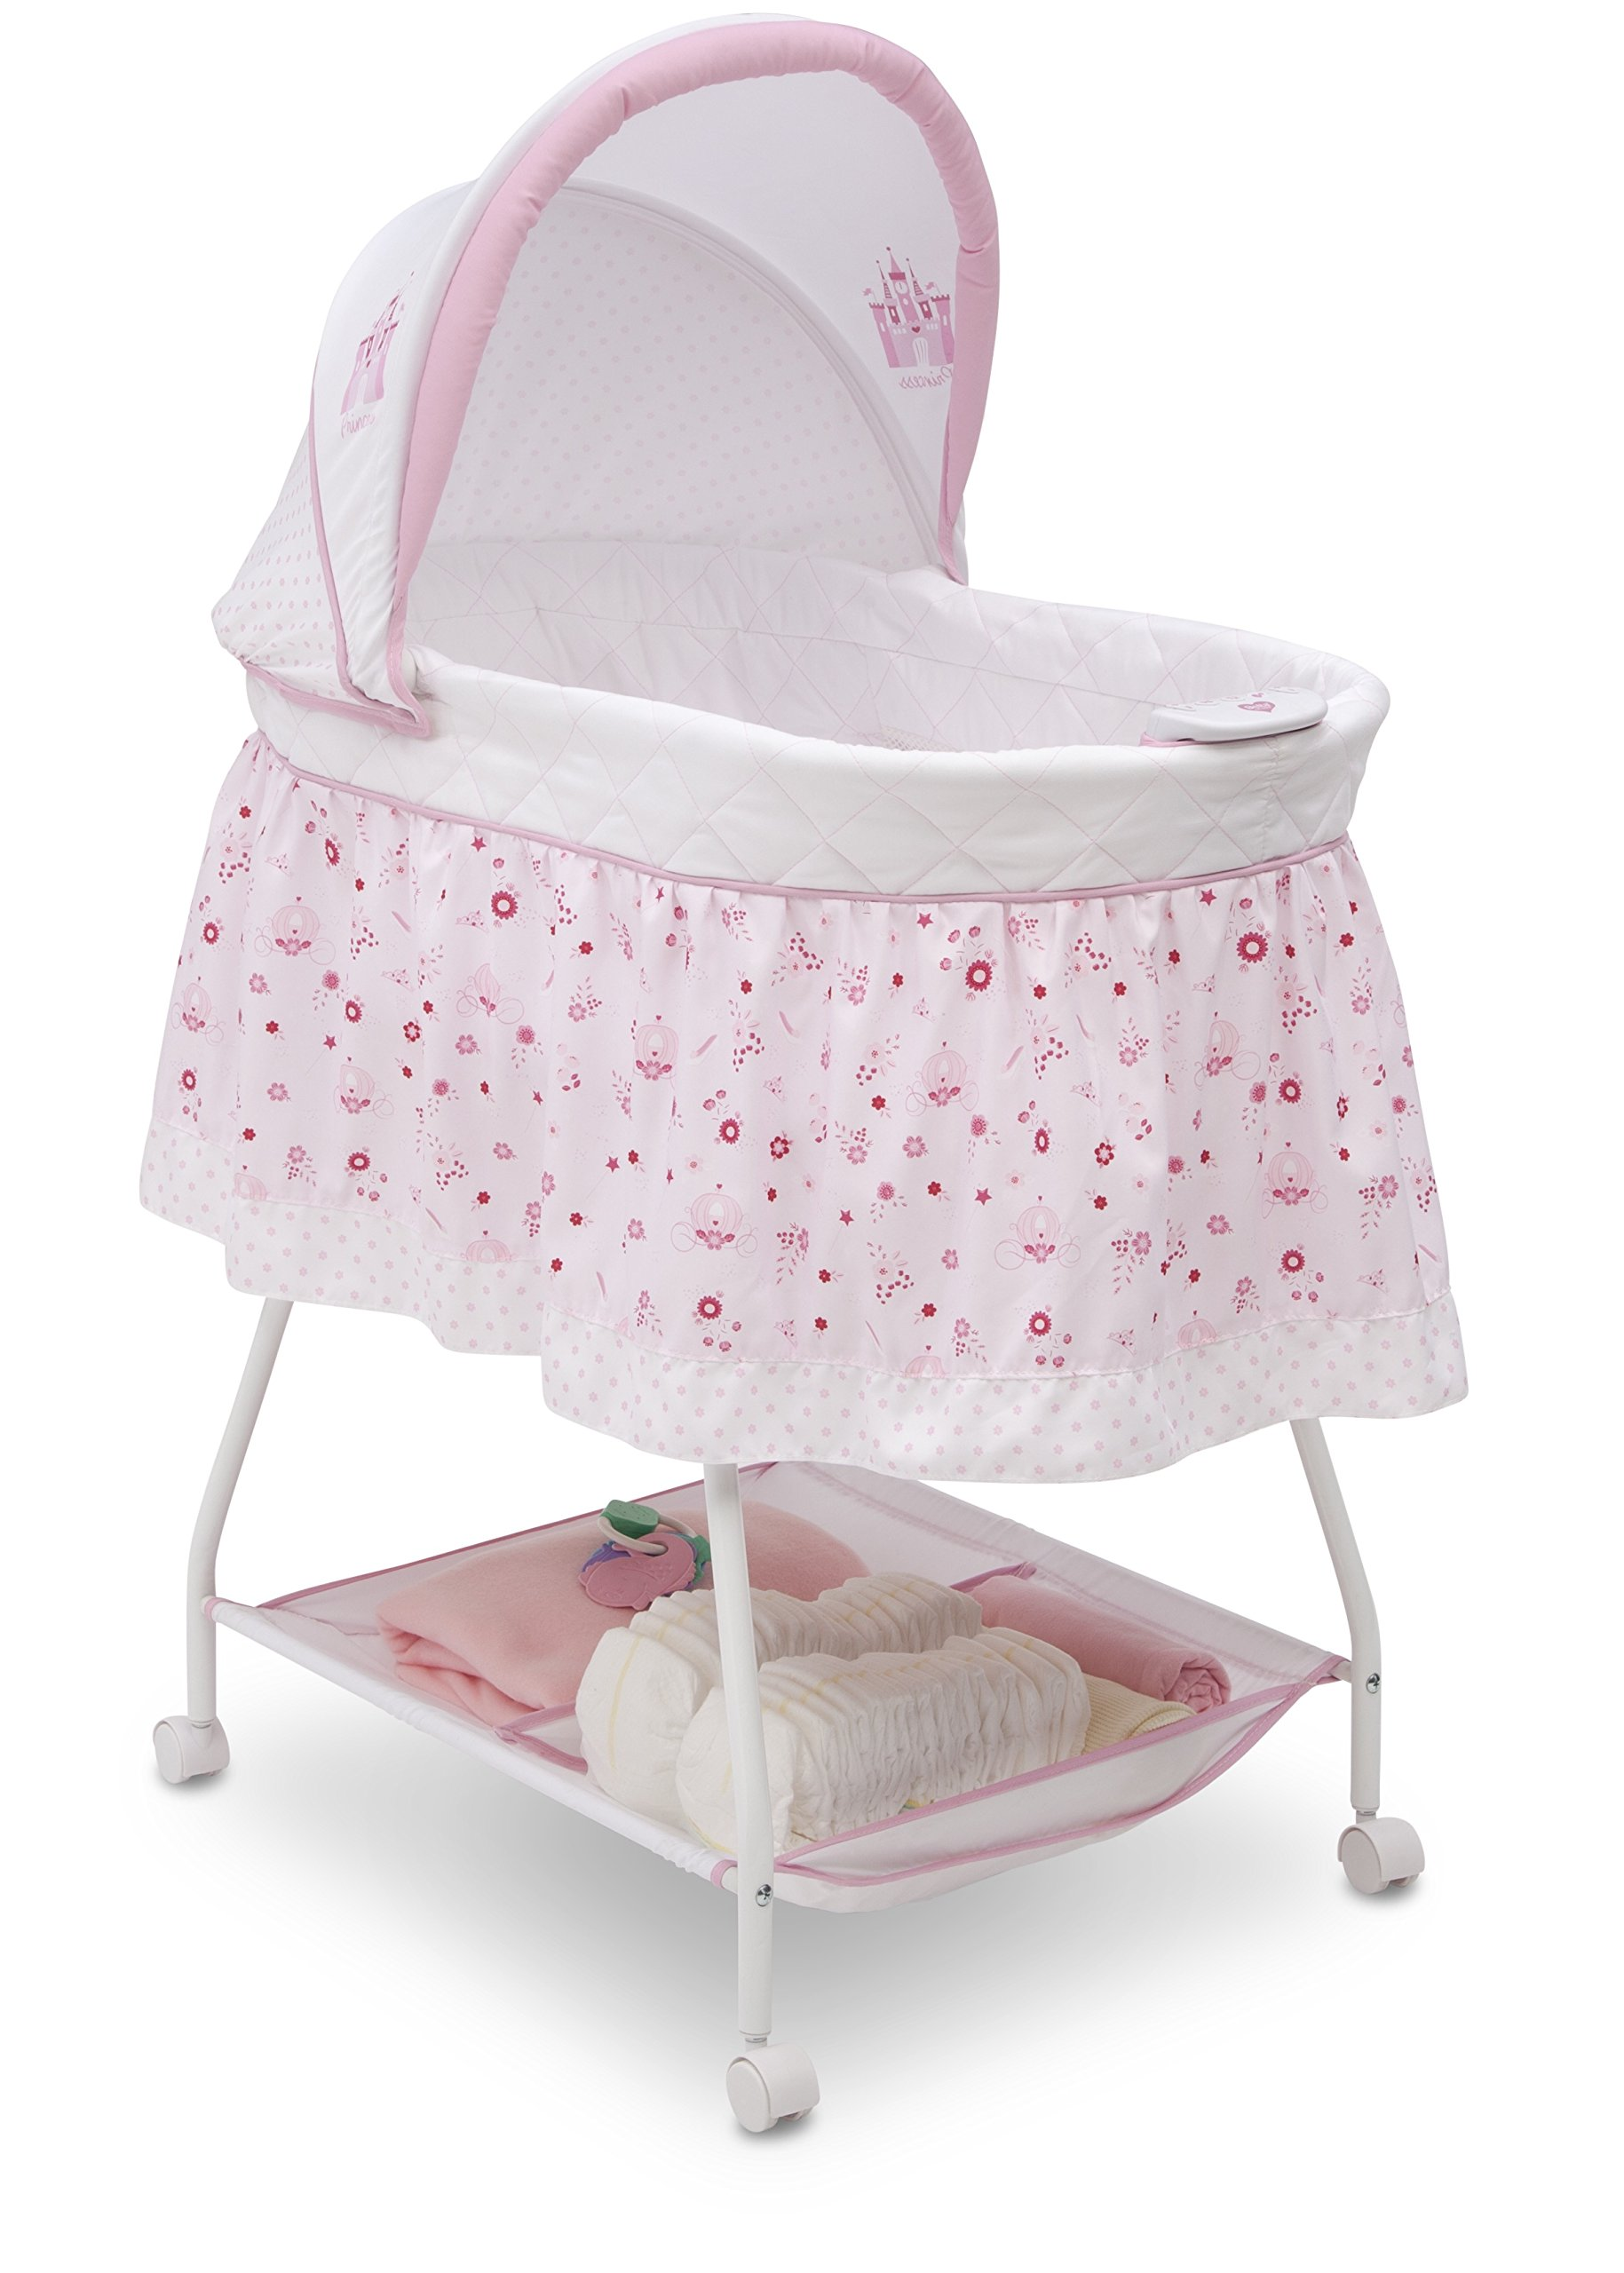 Disney Baby Ultimate Sweet Beginnings Bassinet, Disney Princess by Delta Children